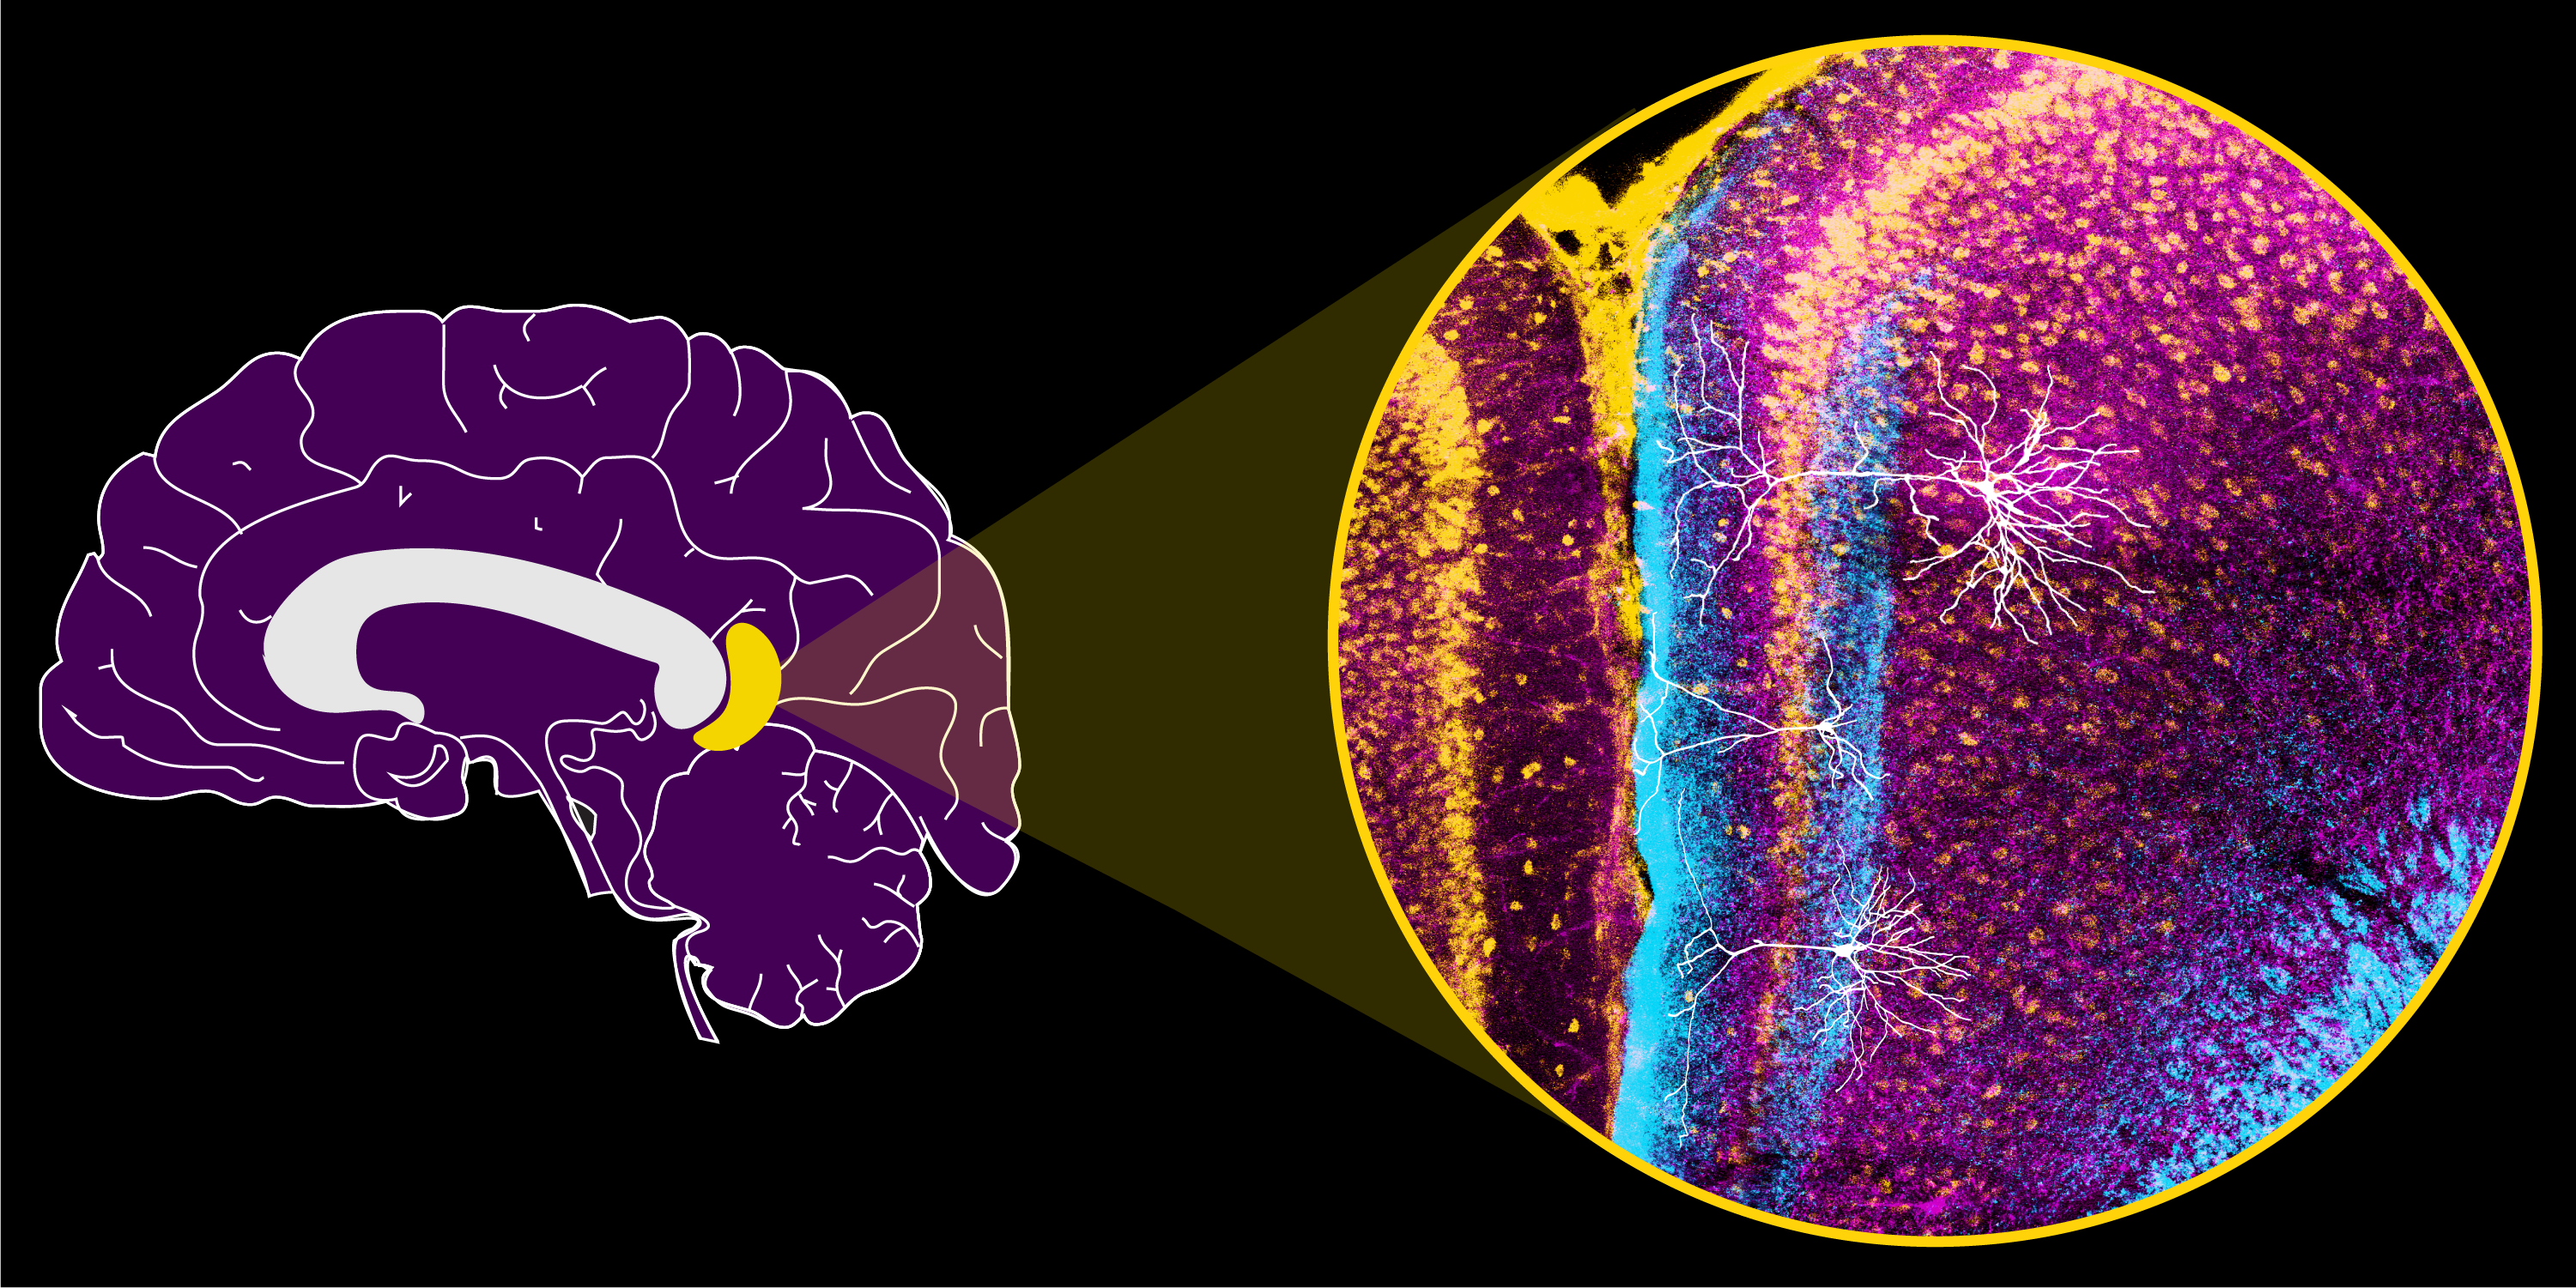 An image of the retrosplenial cortex within the brain, zooming in on the right to show inputs from two other brain regions (blue and purple), along with local retrosplenial neurons (yellow). Three neuronal subtypes (white) are overlaid, revealing a small, unique neuron (middle) ideally positioned to receive and process spatial inputs. Image credit: Brennan, Jedrasiak-Cape, Kailasa et al. (CC BY 4.0)